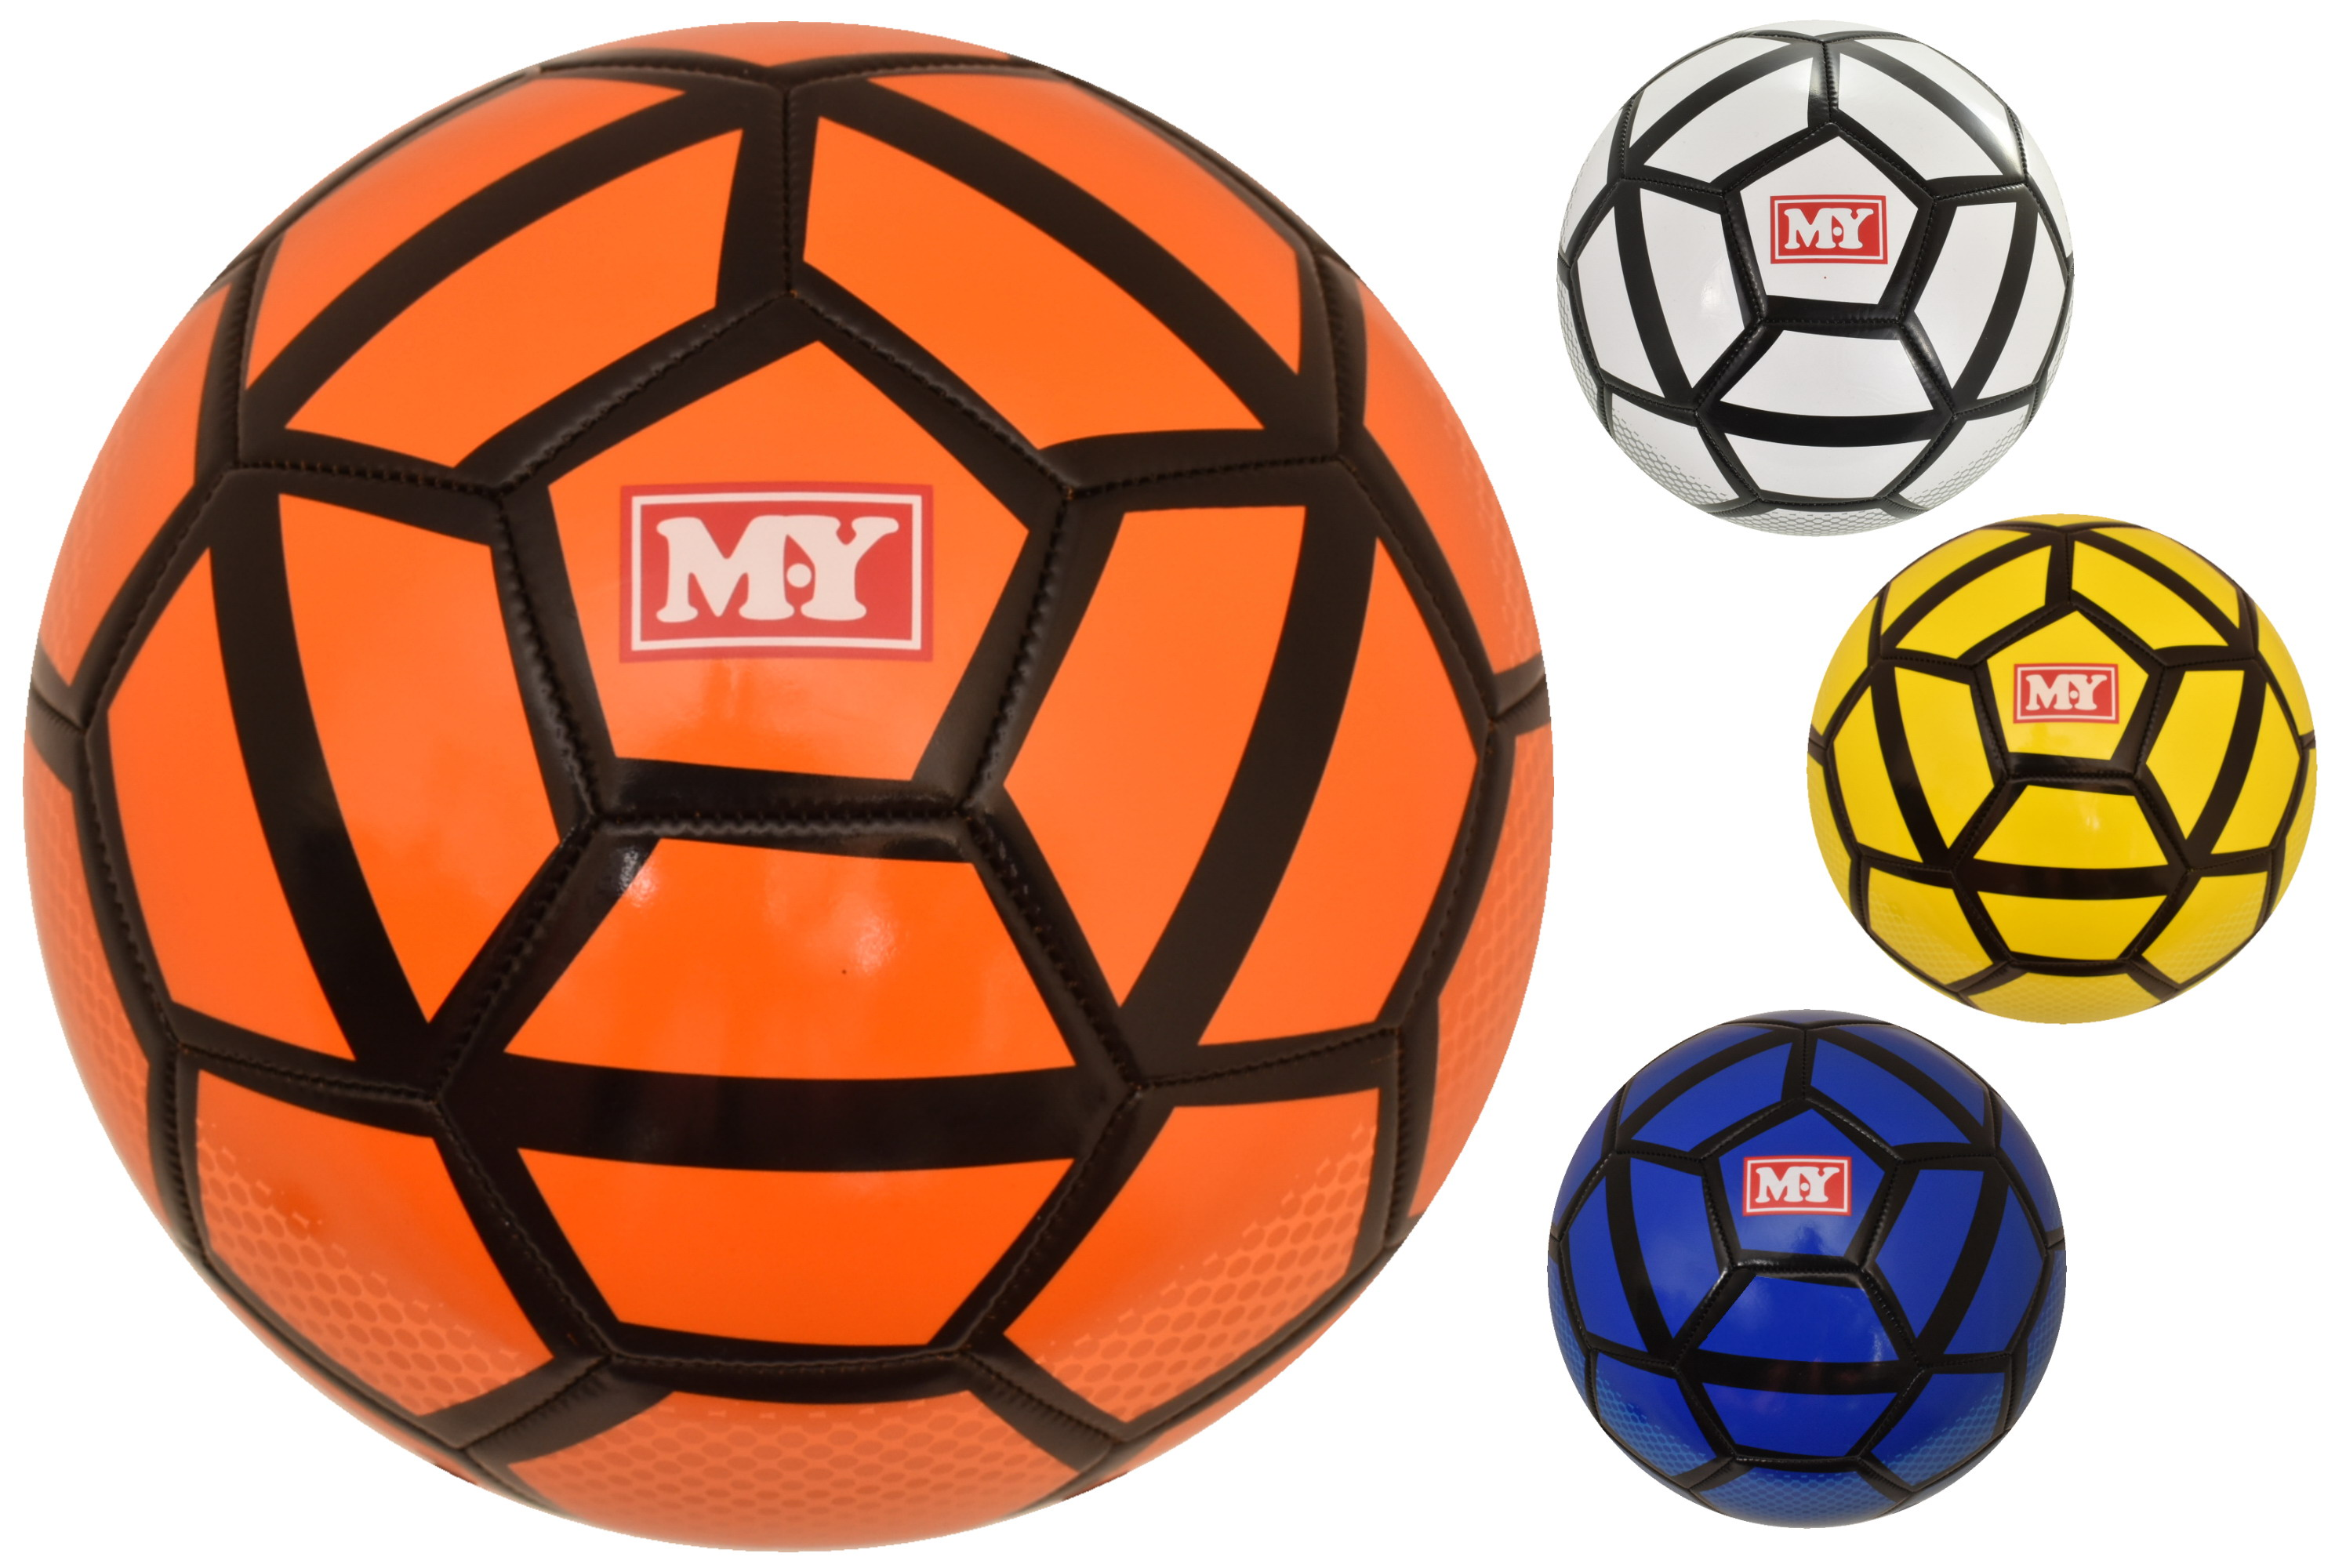 32 Panel 280g Stitched Neon Premier Football (D)4 Asst